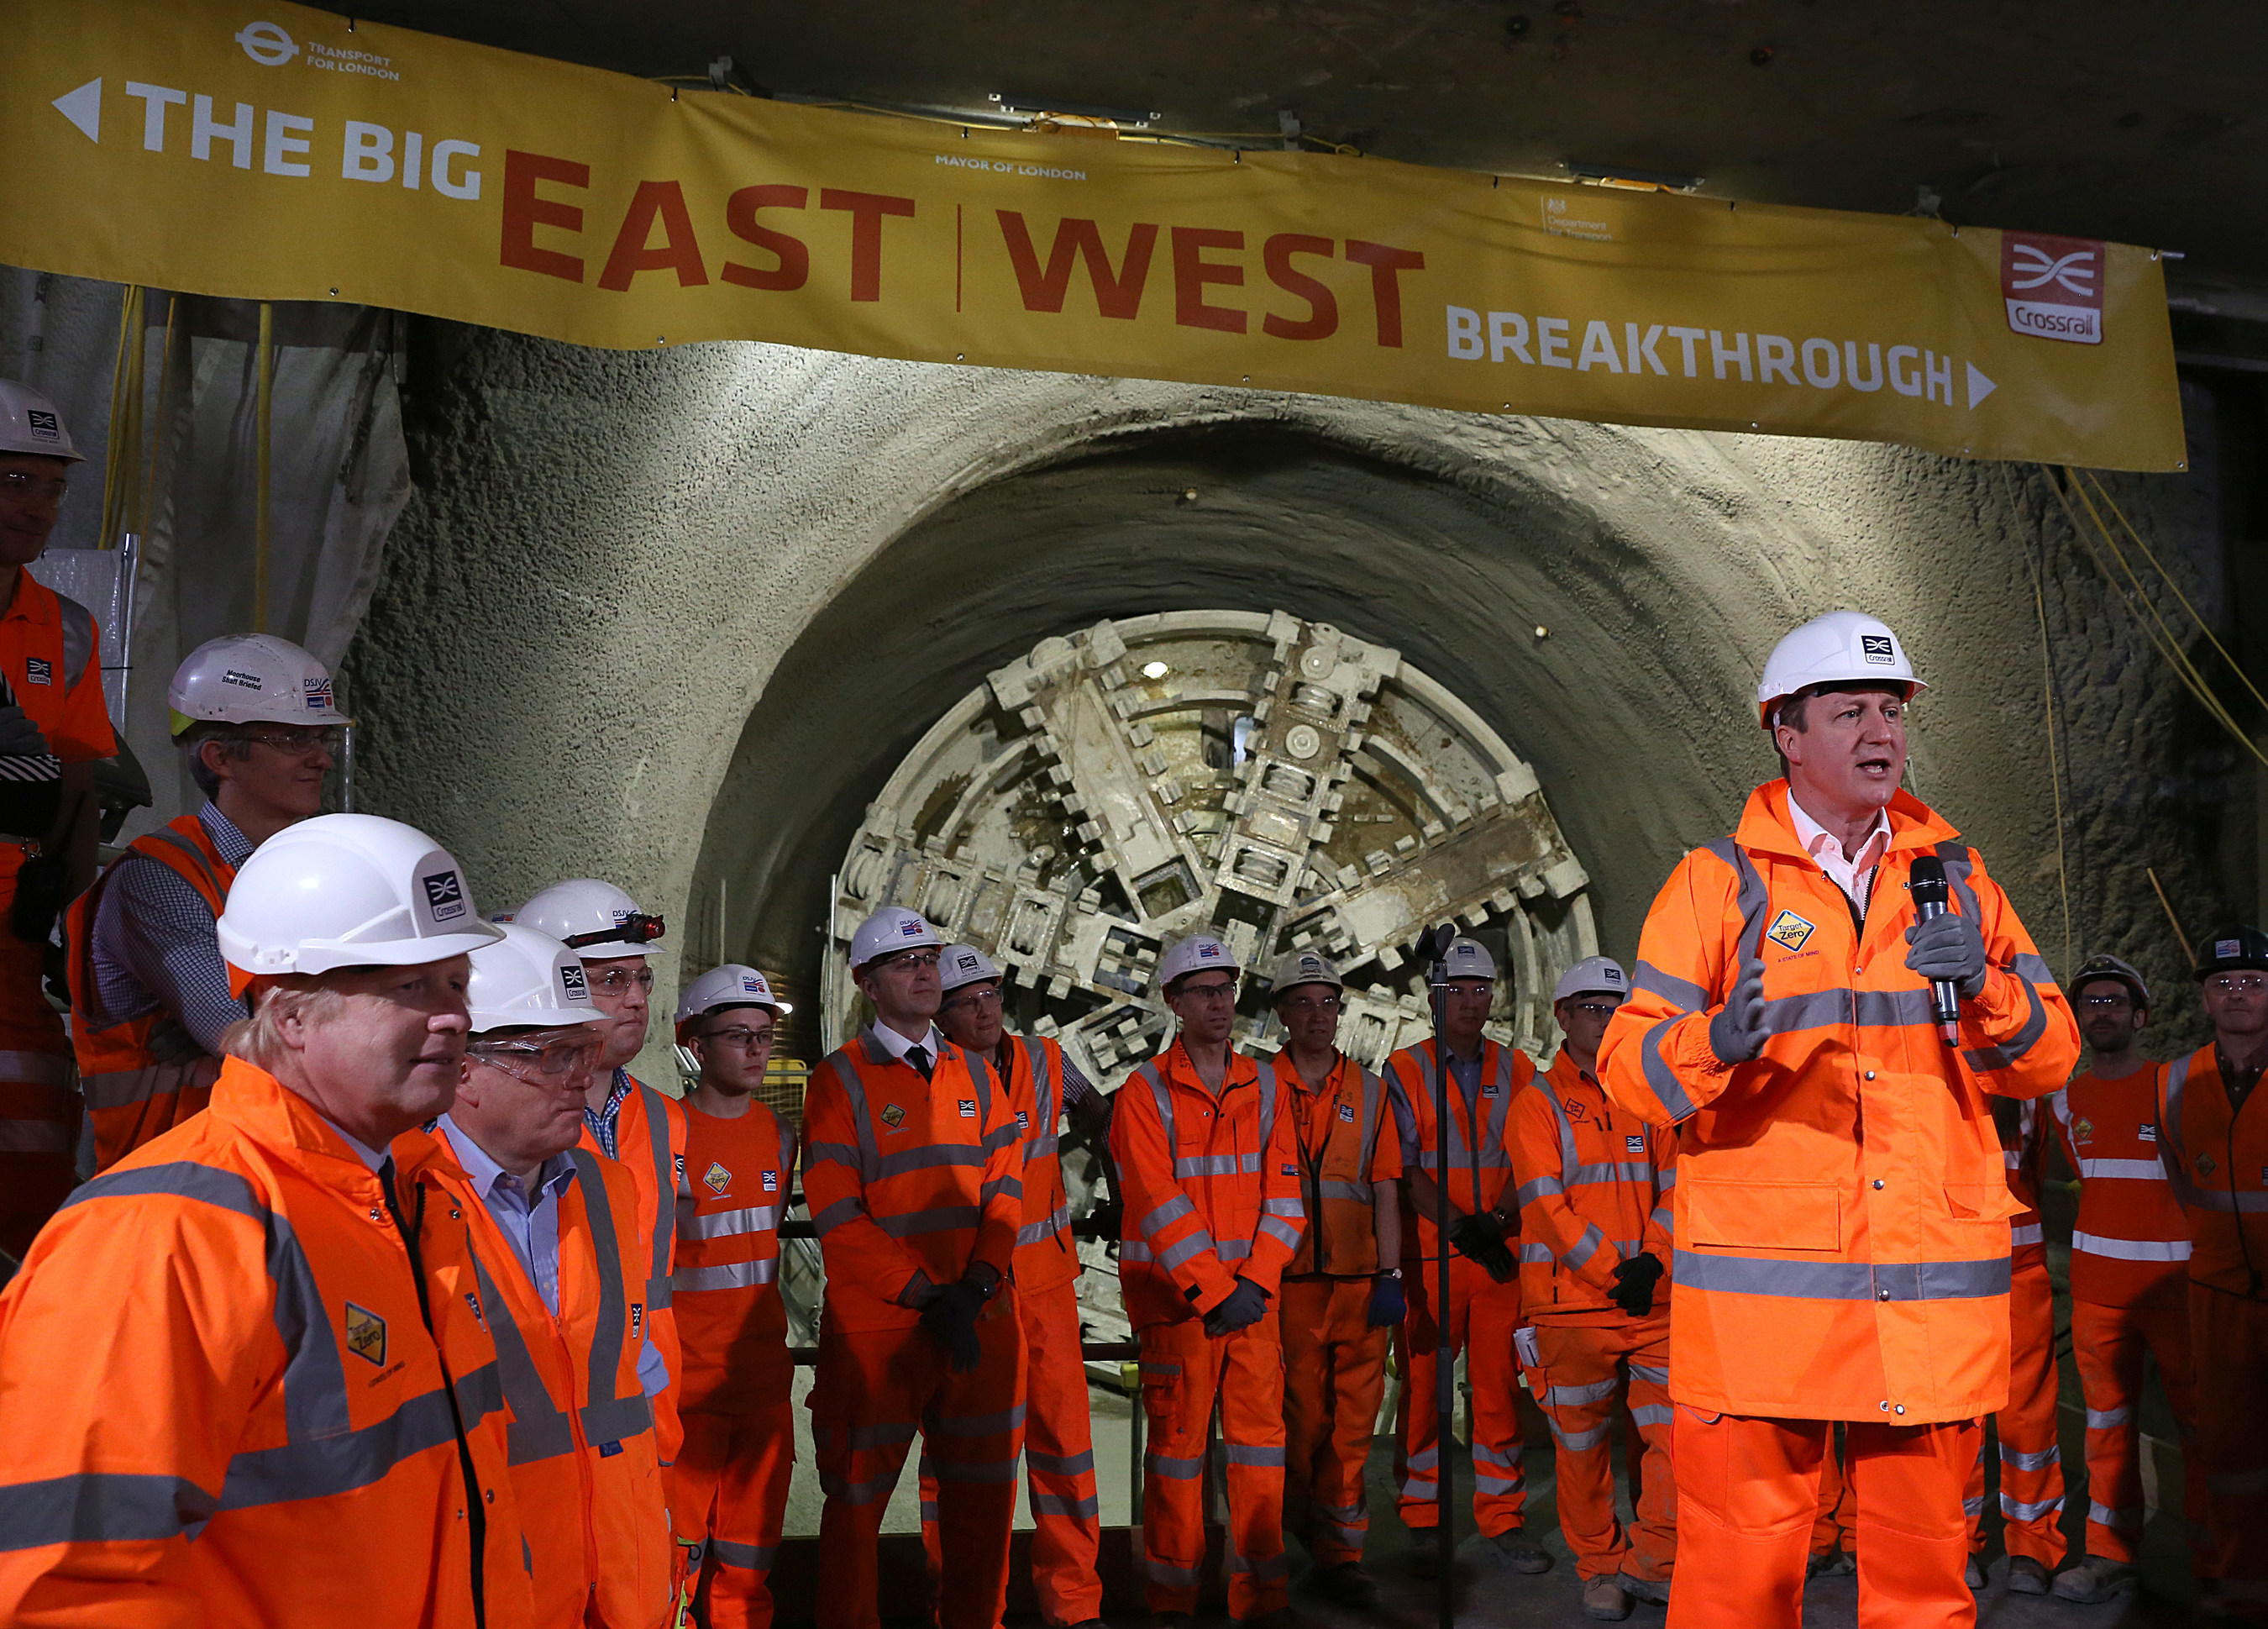 Prime Minister and Mayor of London celebrate completion of Crossrail's tunnelling marathon.